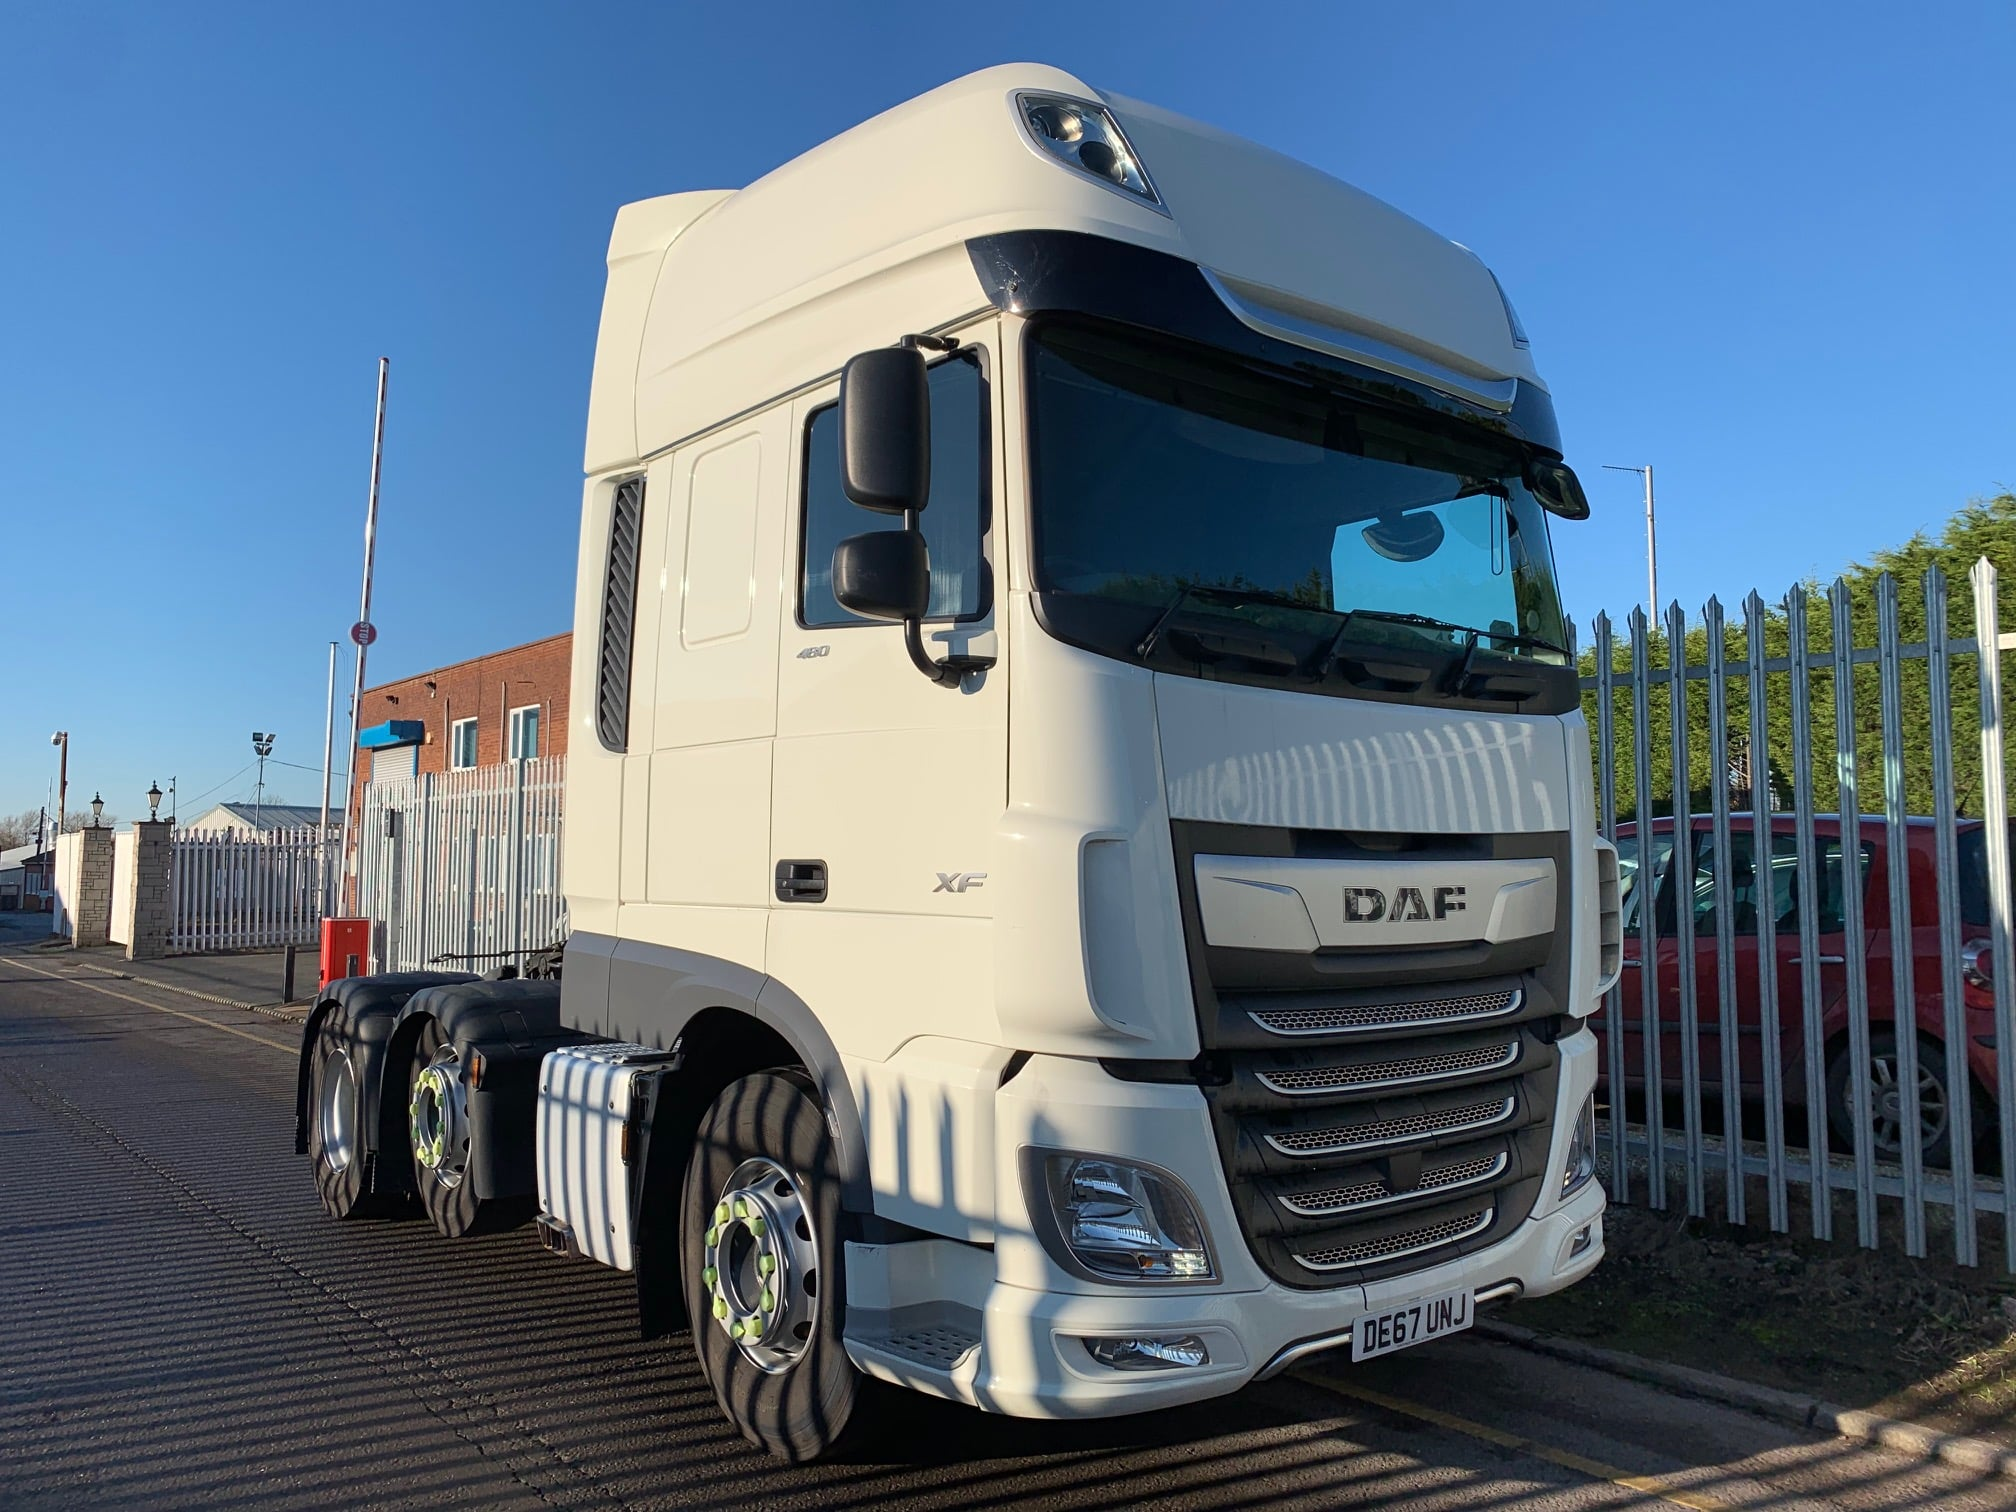 2017 (67) DAF XF Tractor Unit. Euro 6, 480bhp, Superspace Twin Sleeper Cab, AS Tronic Automatic Gearbox, Steering Wheel Controls, Aluminium Catwalk Infill Panel, Low Mileage, Choice & Warranty Available.